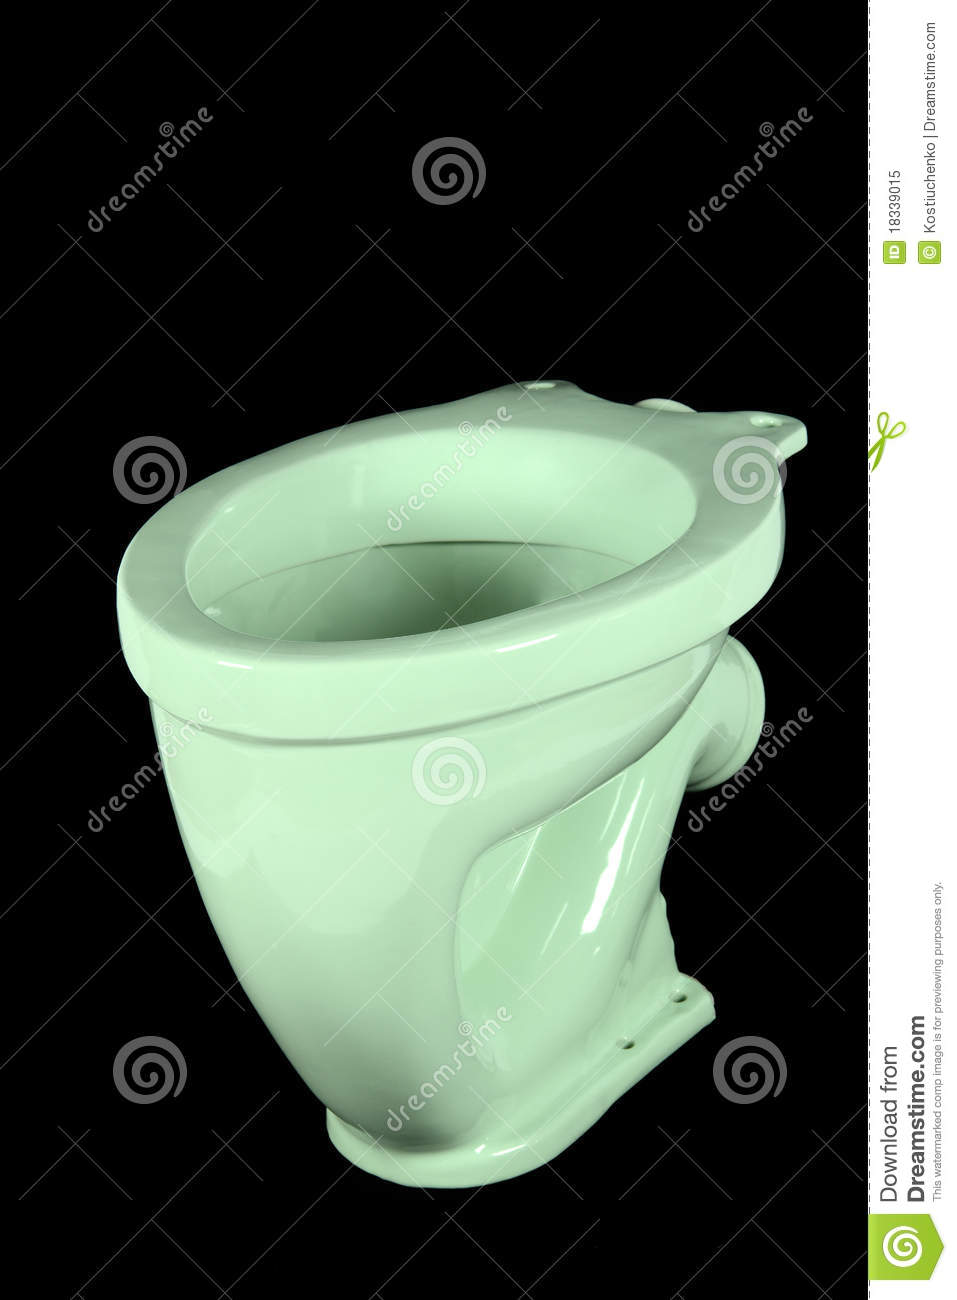 The Light Green Toilet Bowl Royalty Free Stock Photo Image 18339015